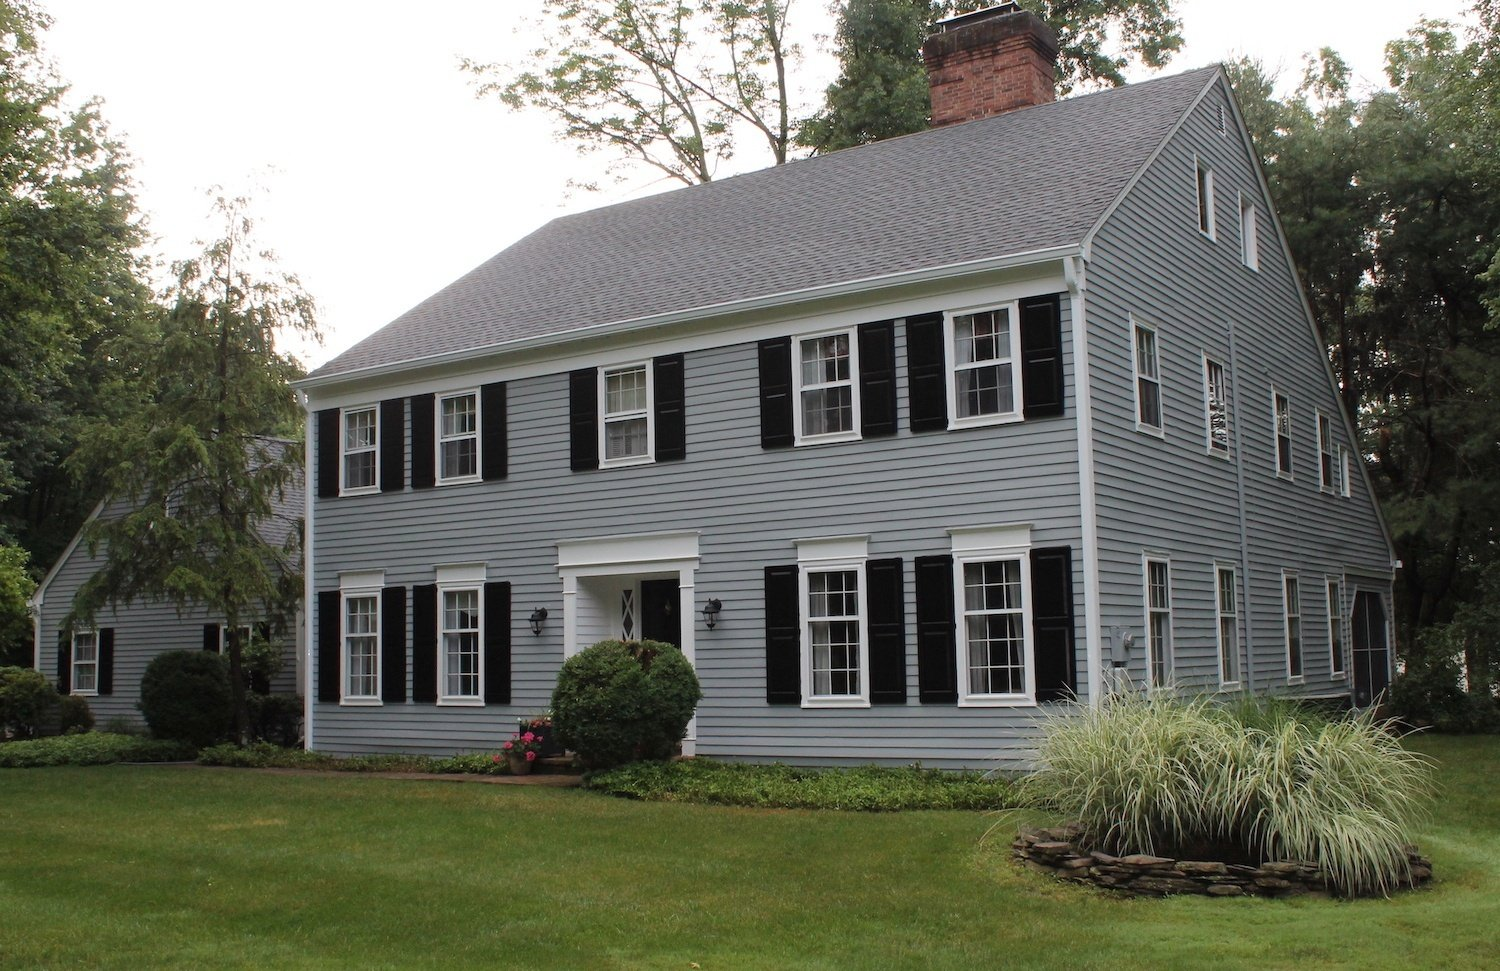 Completed Exterior Painting Project after Sanding, Priming and Painting